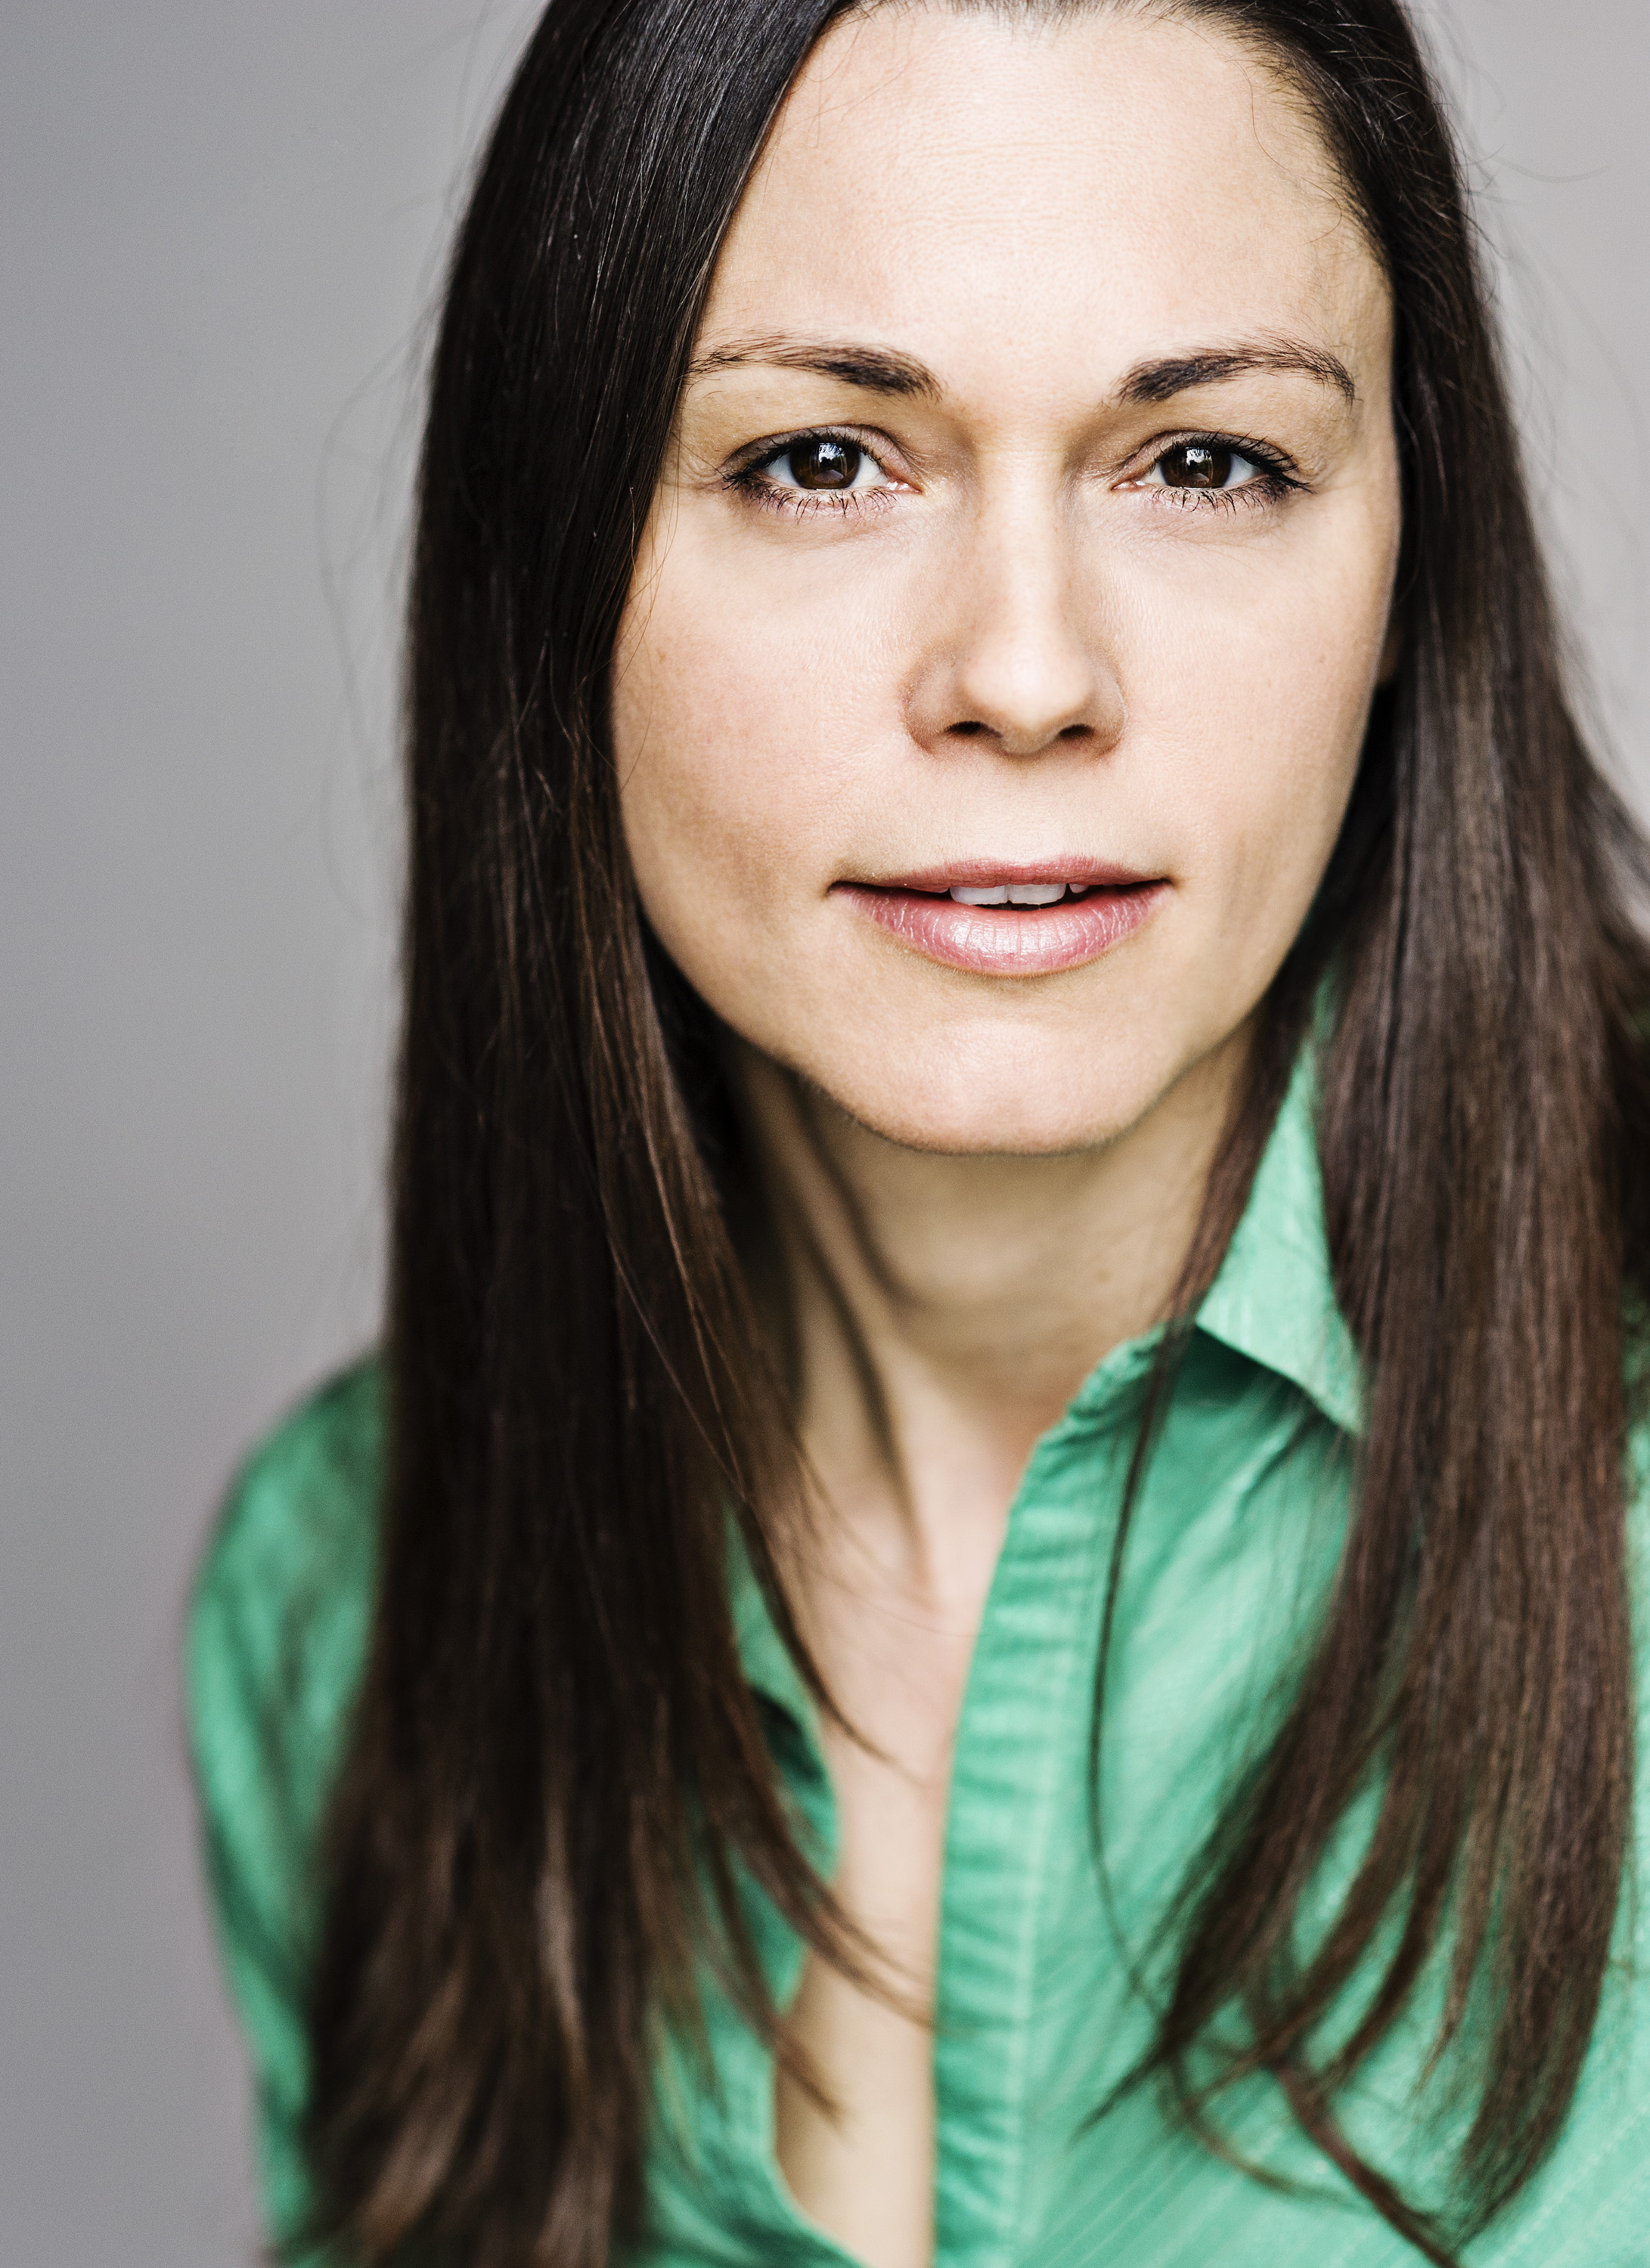 Zara Plessard as Amanda Barkham MP